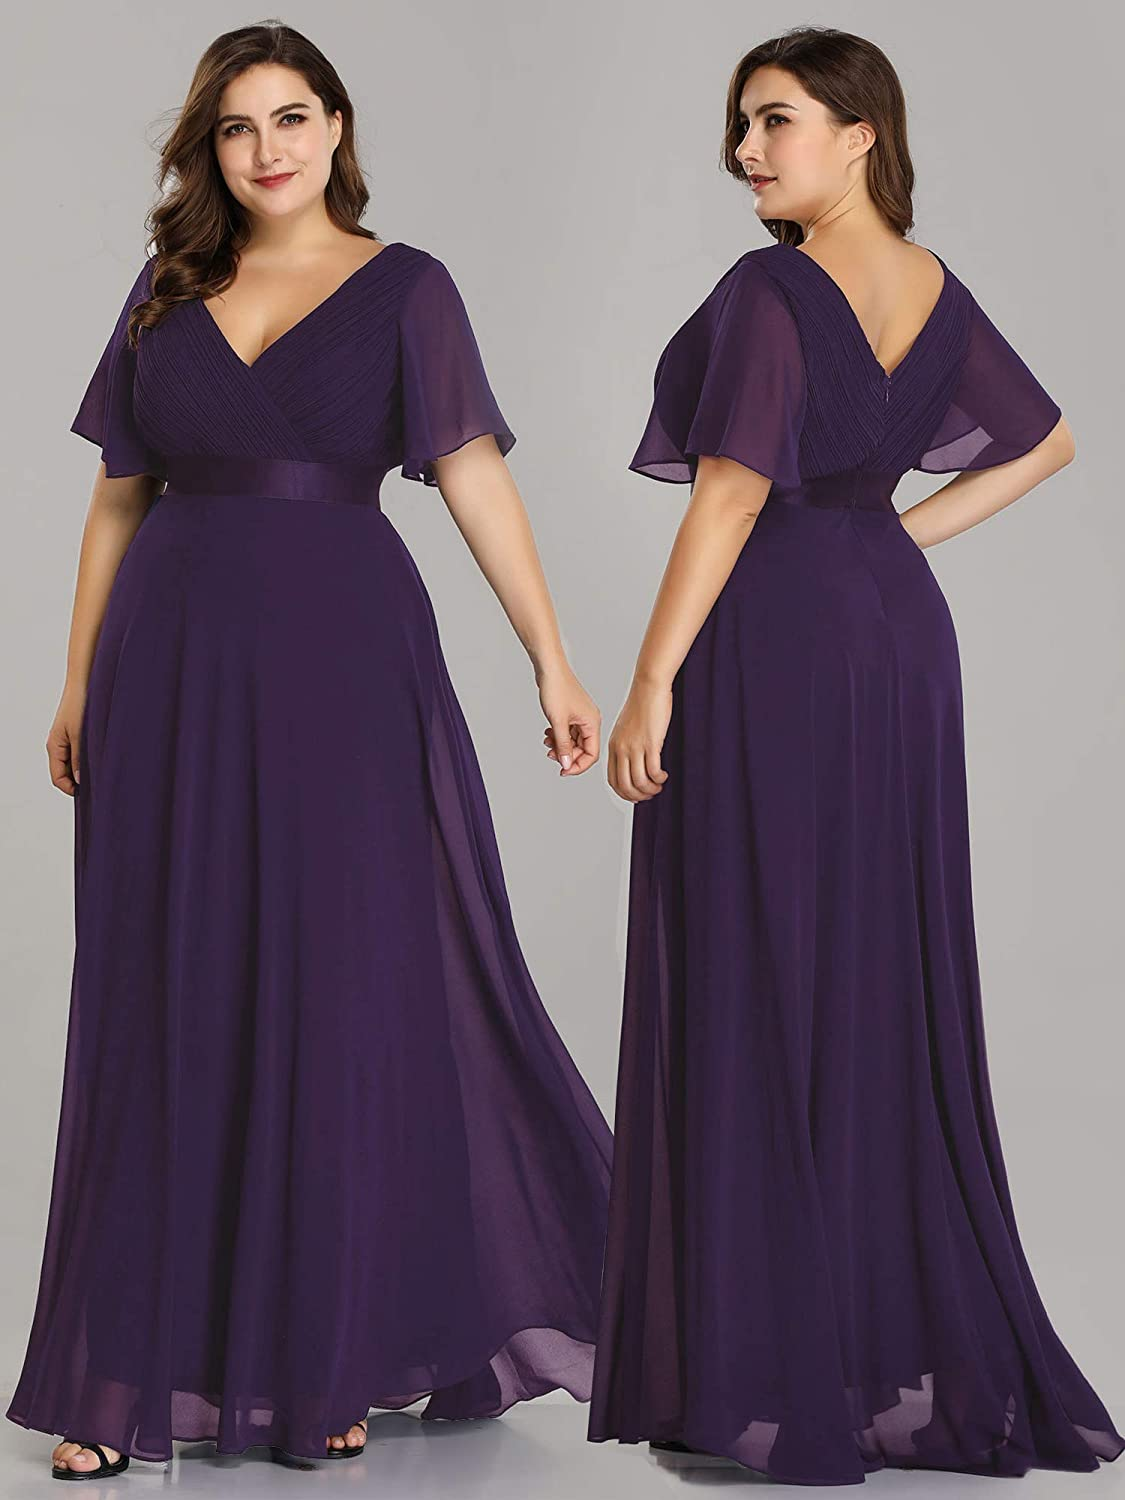 Ever-Pretty Womens Elegant Double V Neck A Line Empire Waist with Short Sleeve Long Chiffon Plus Size Bridesmaid Dresses 09890PL